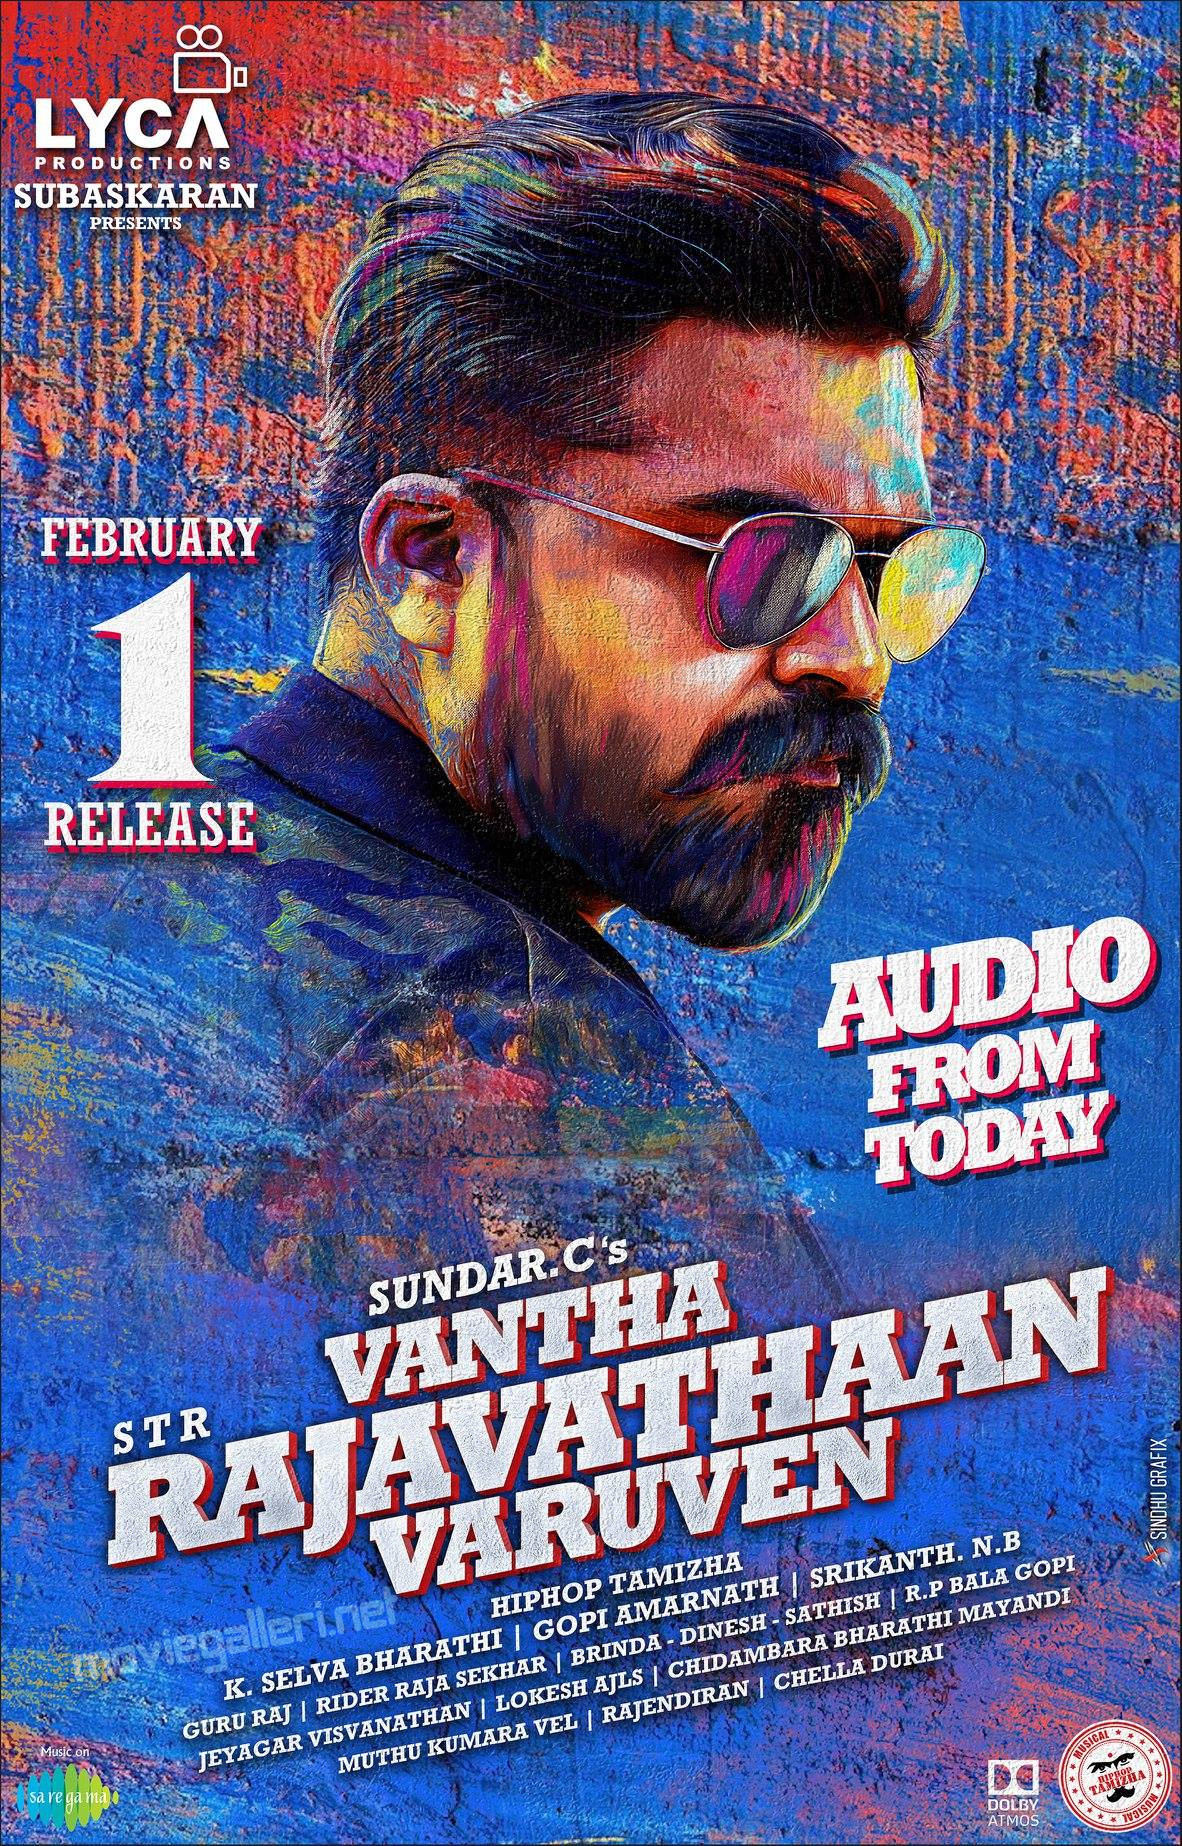 STR Vantha Rajavathaan Varuven Audio Release Today Posters